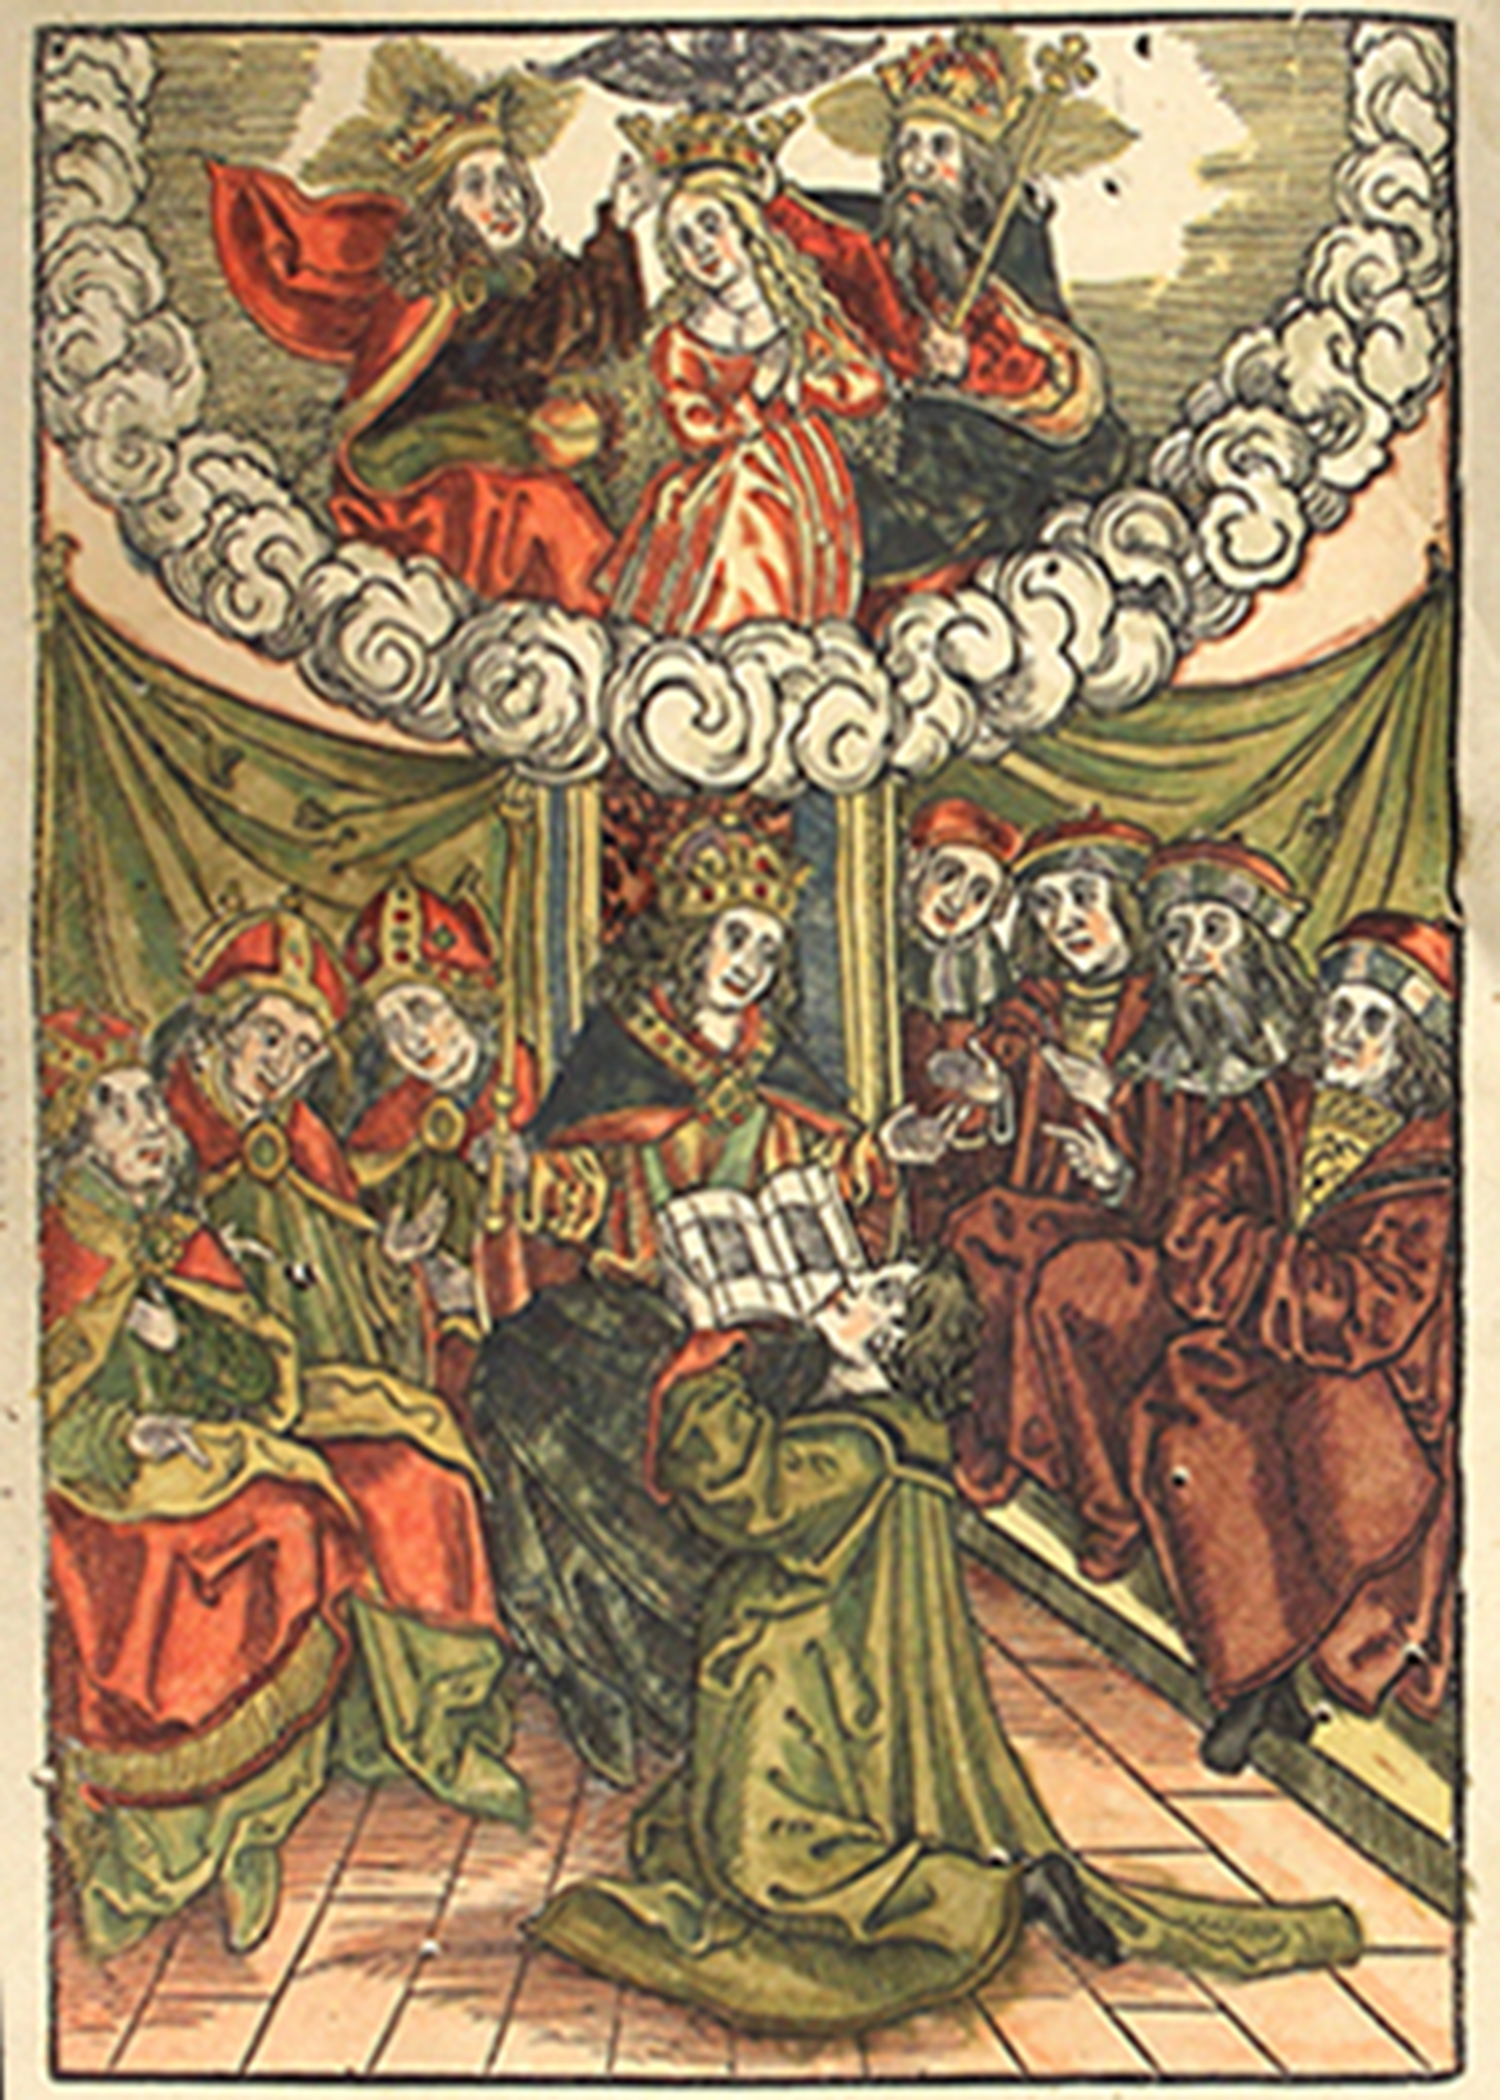 Woodcut from Der Richterlich Clagspiegel.